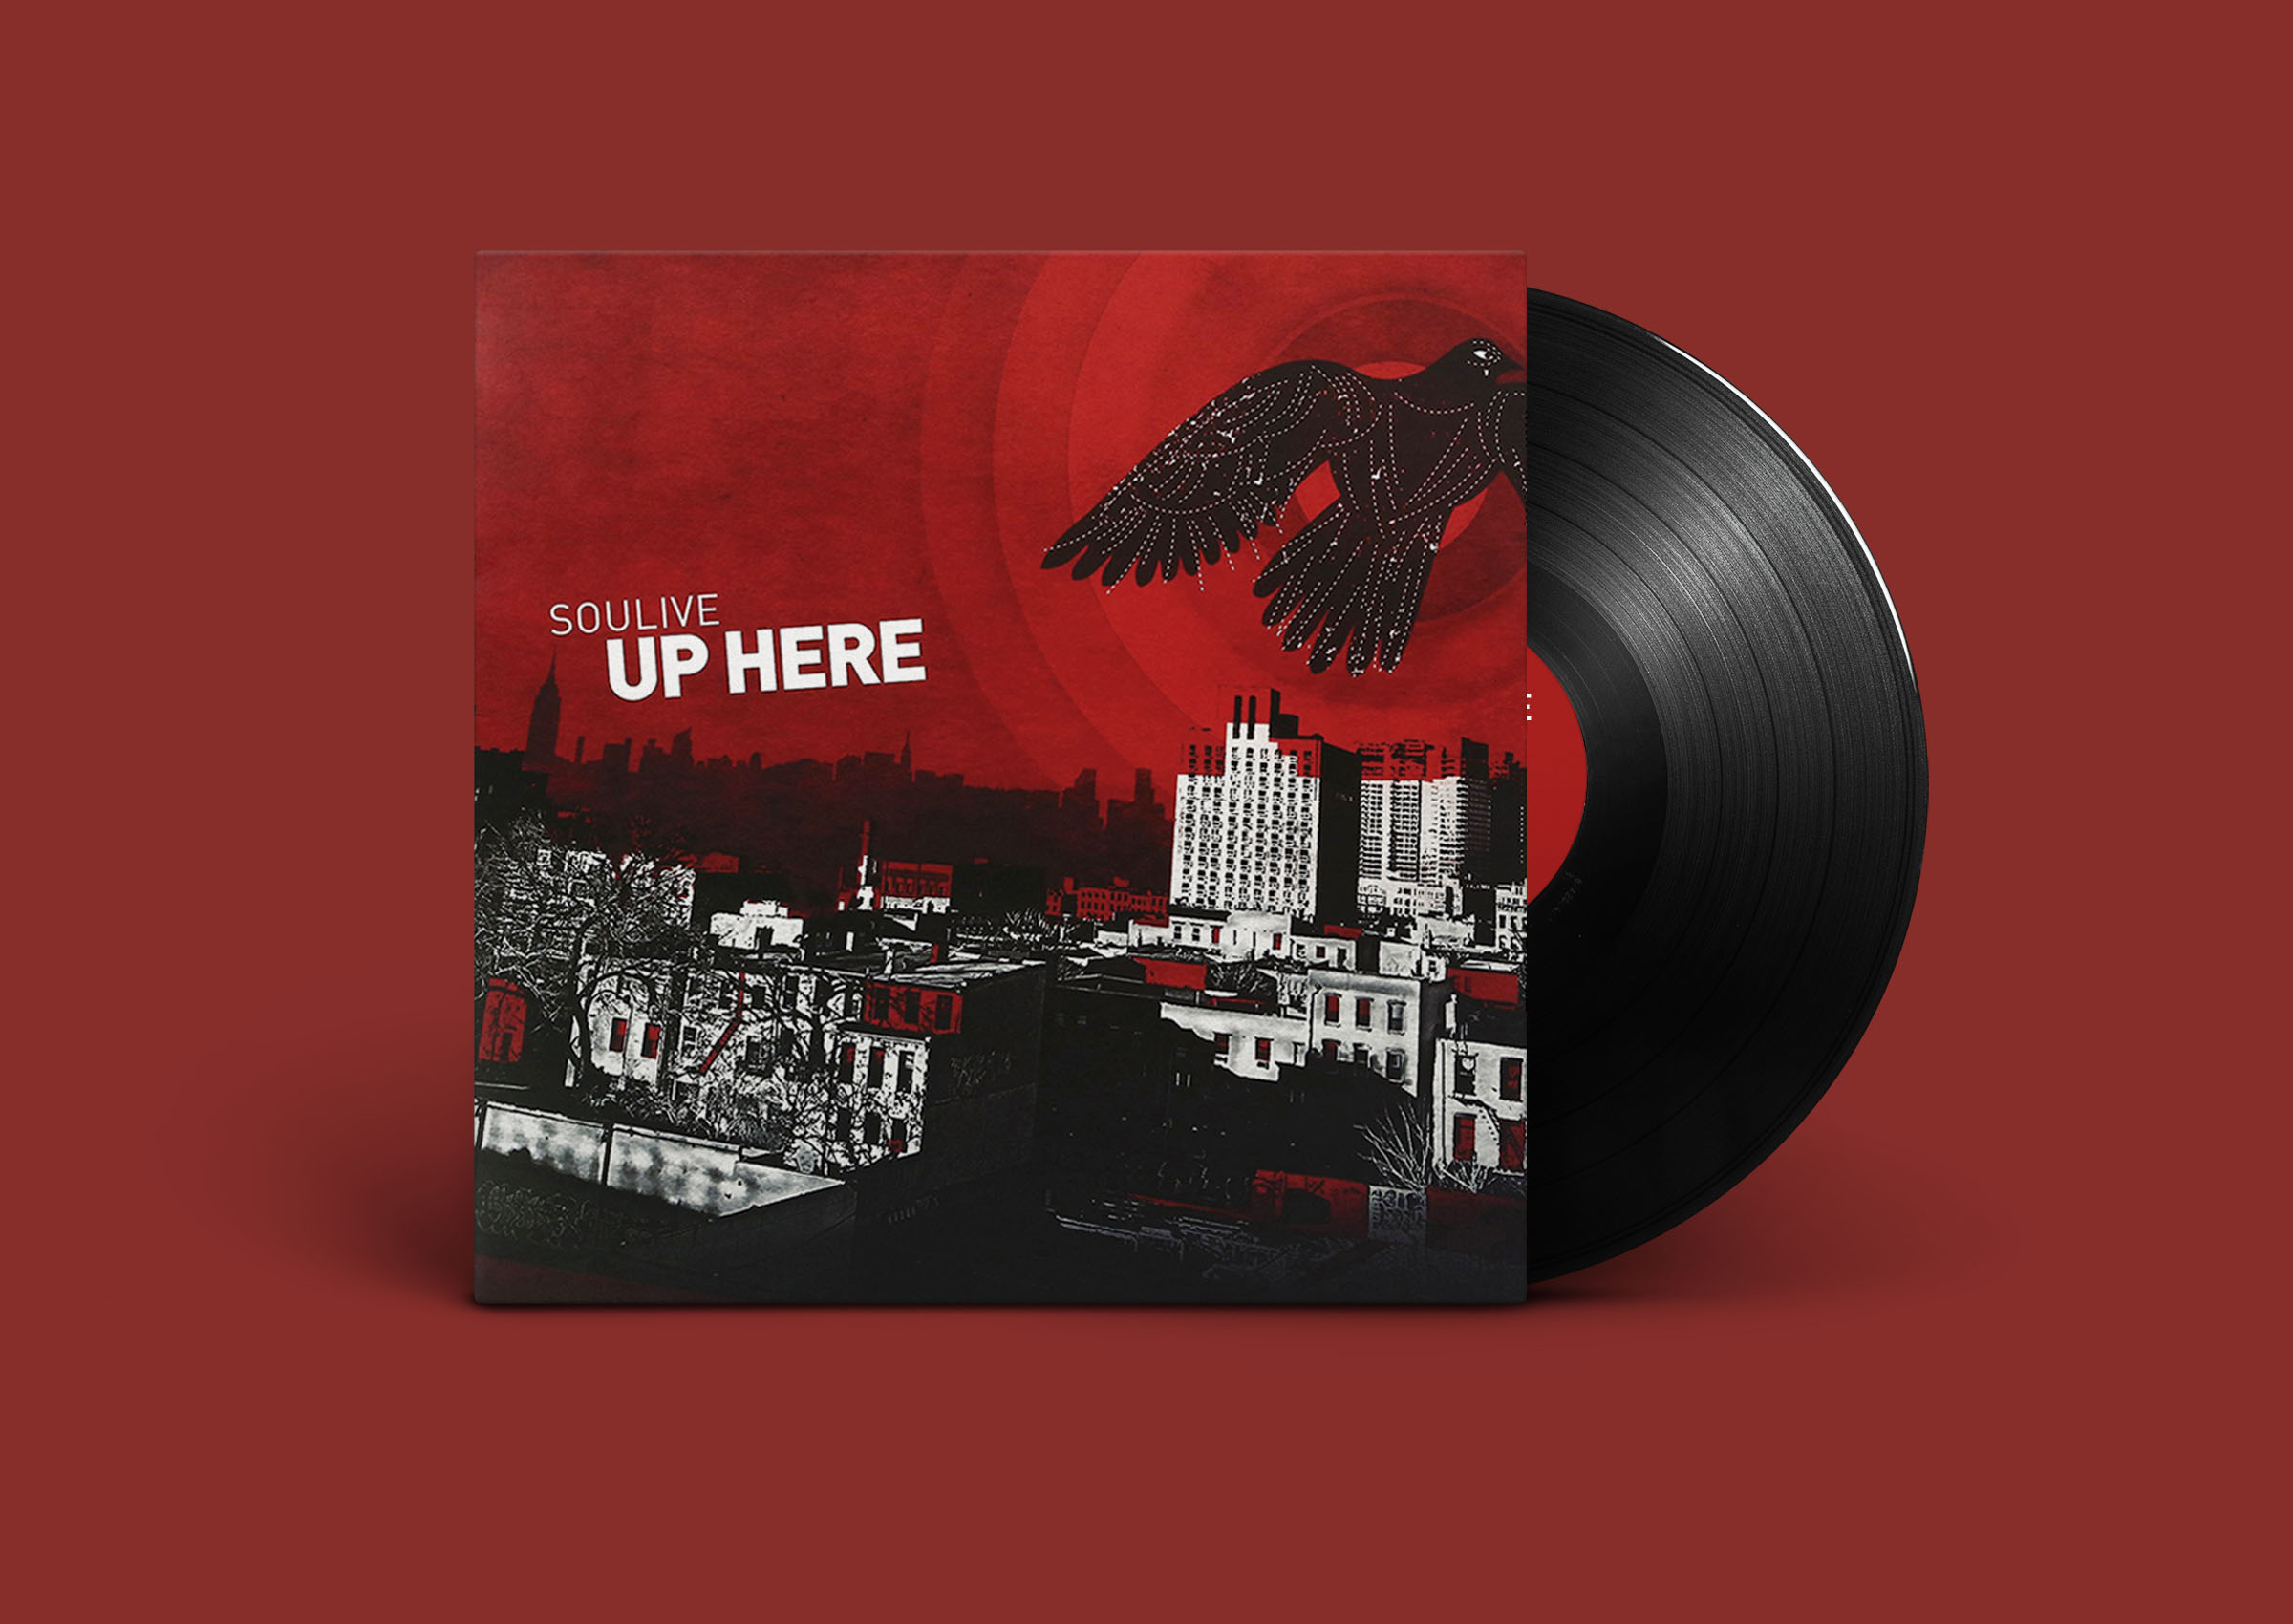 soulive up here album artwork design